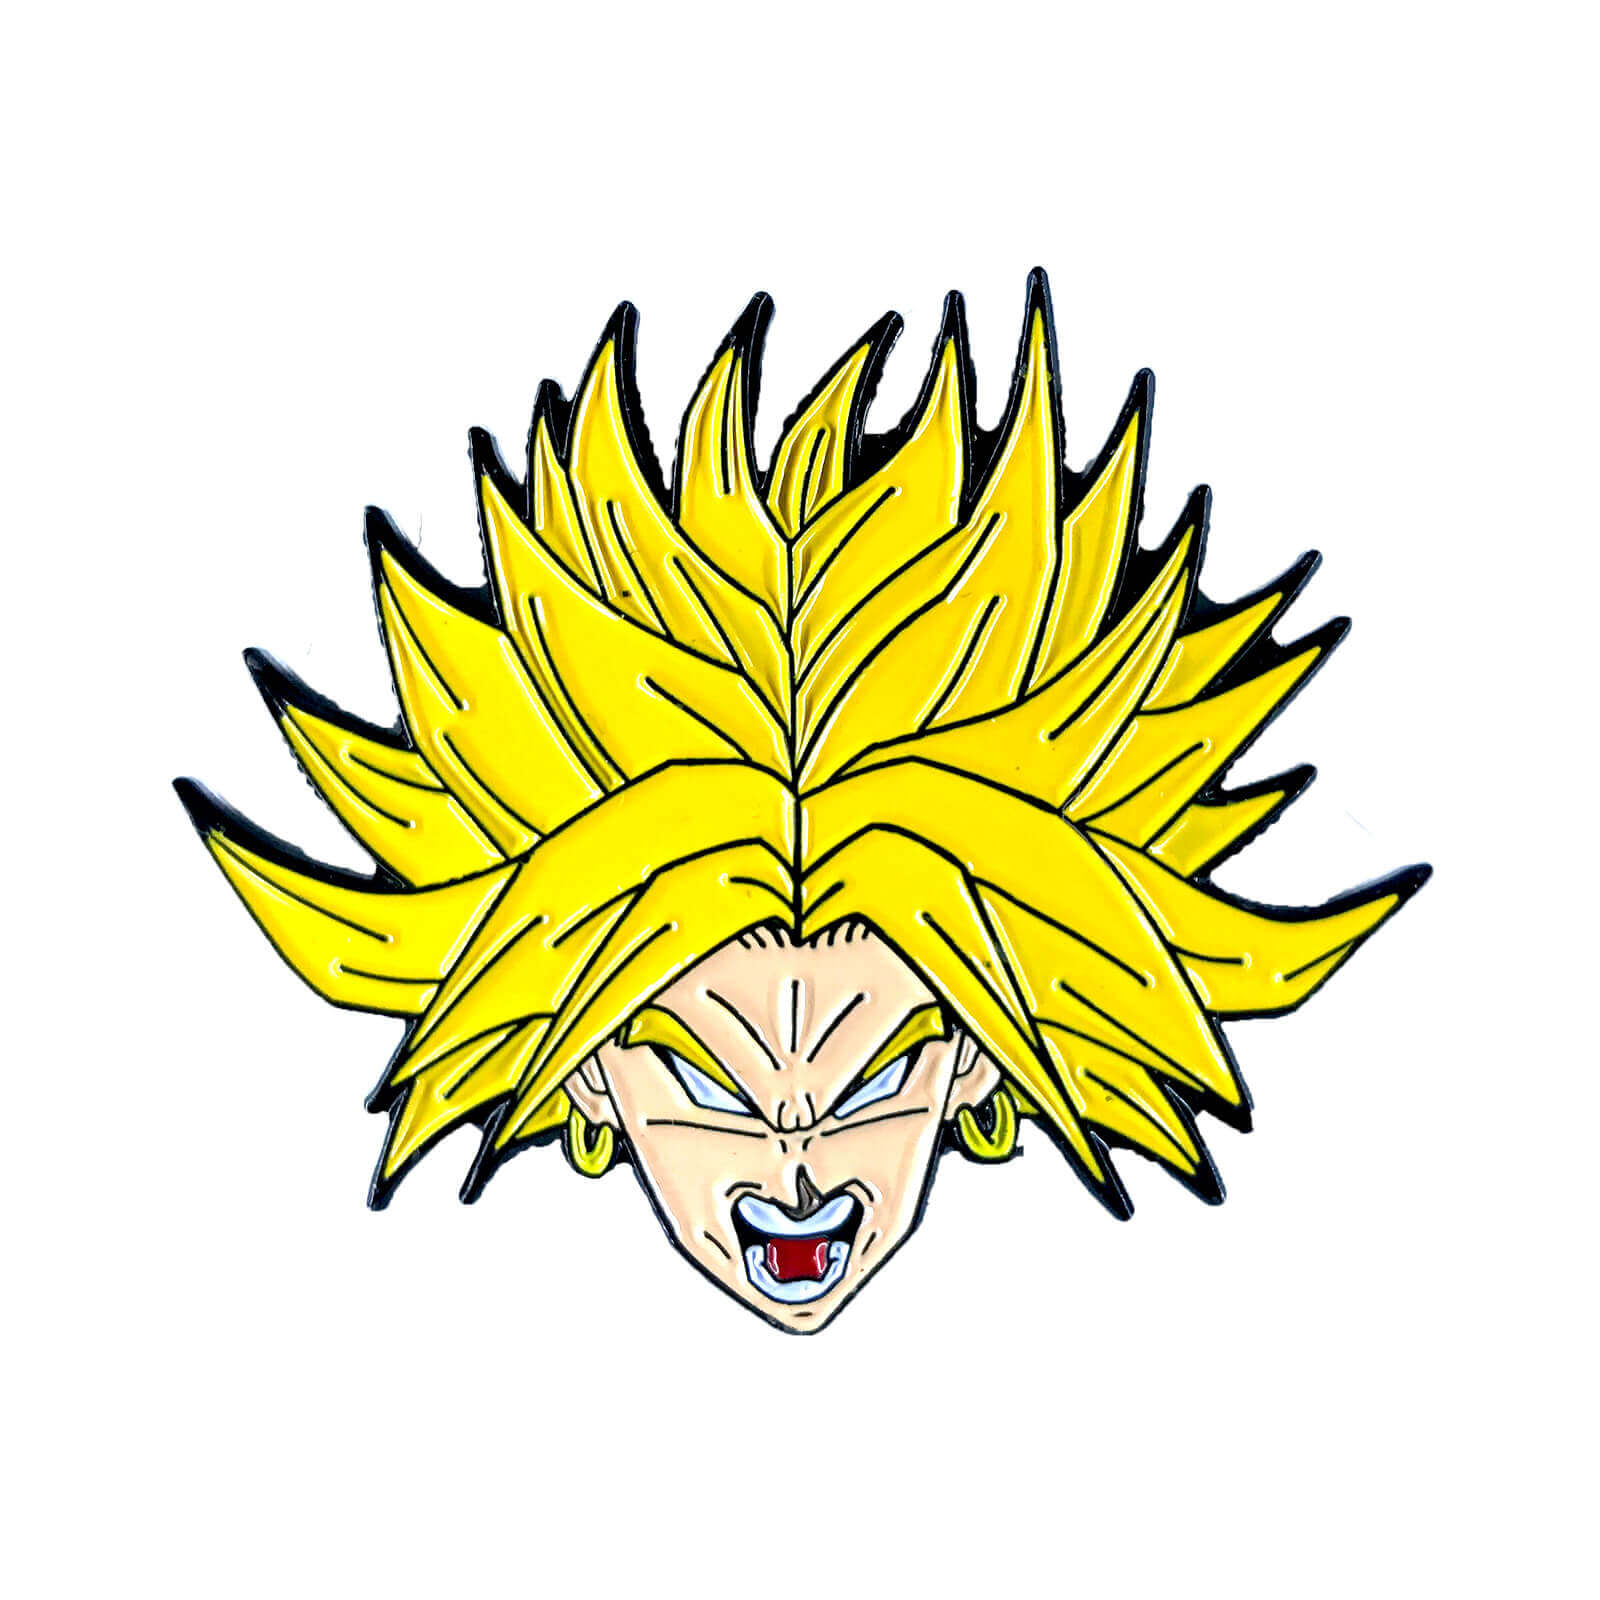 Broly Legendary Super Saiyan Enamel Pin